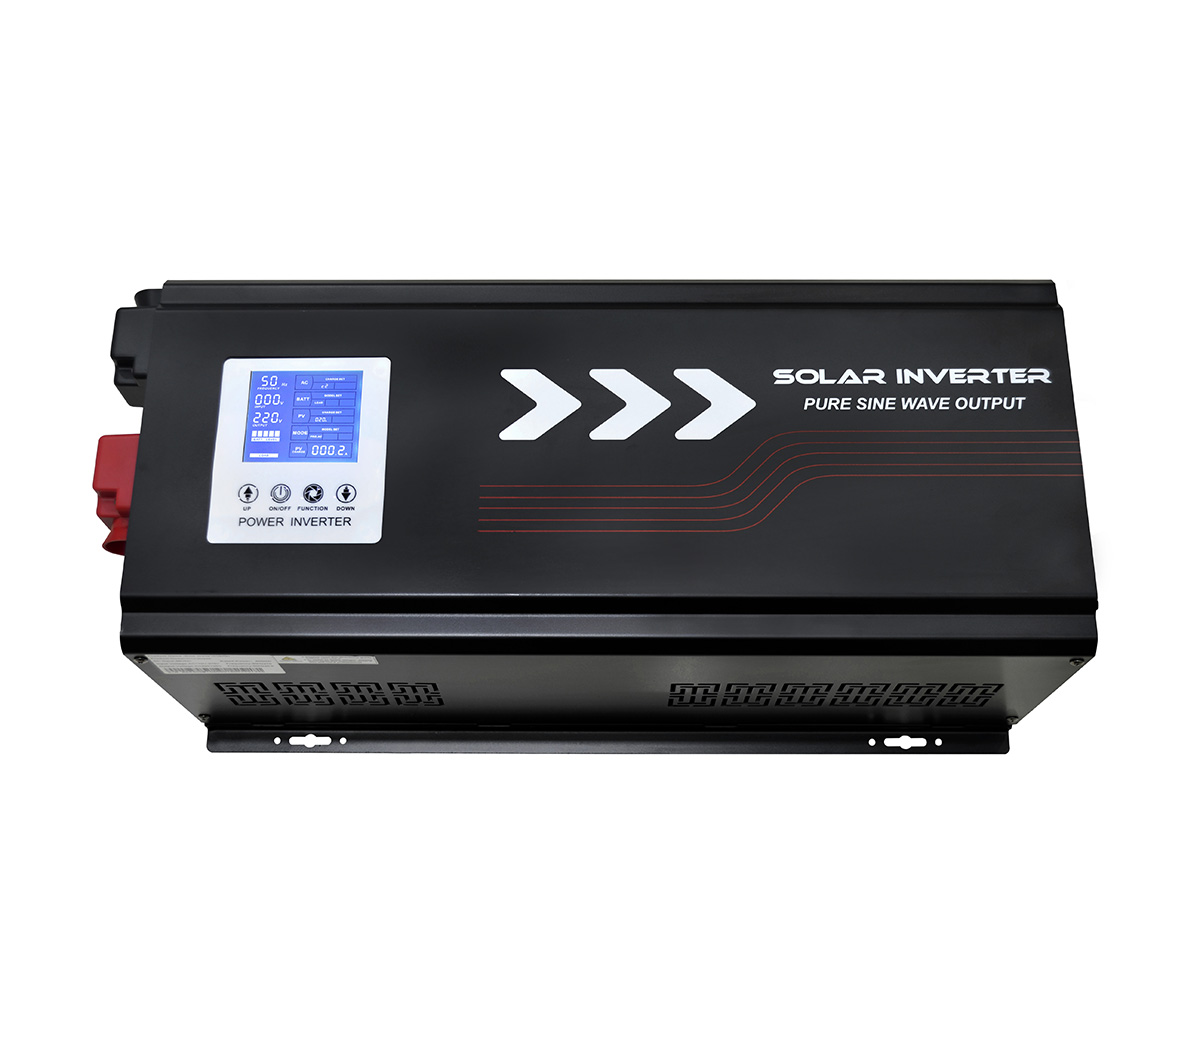 W10 power inverter(1000w-3000w)